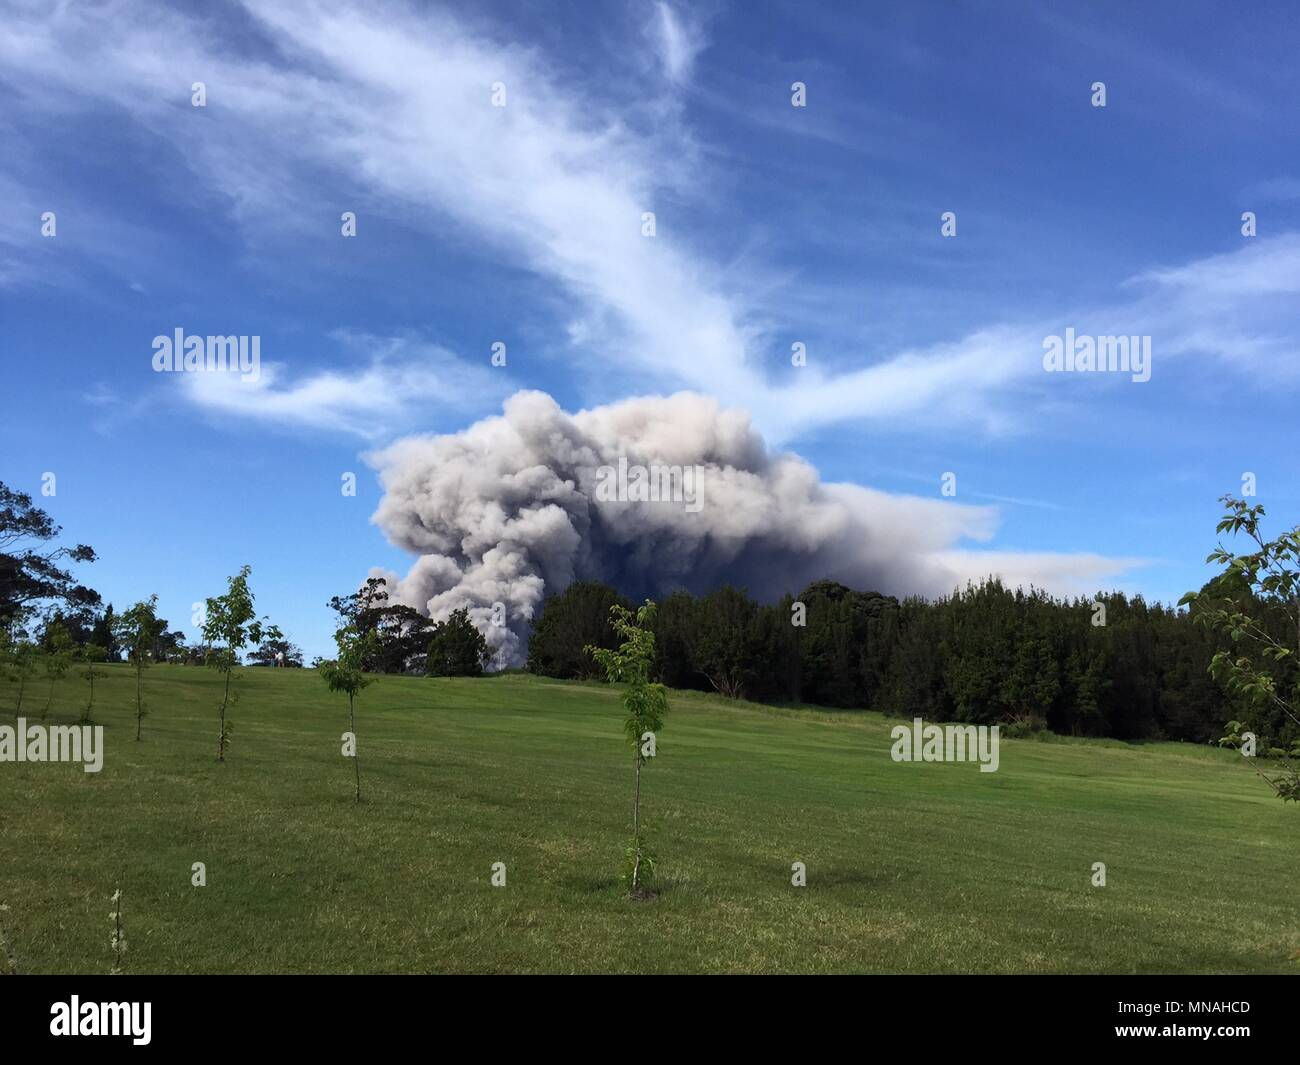 Kilauea Volcano, Hawaii. 15th may 2018. A grey ash plume rises from the Halemaumau crater in the Kilauea volcano seen from the Volcano Golf Course May 15, 2018 in Hawaii. The recent eruption continues destroying homes, forcing evacuations and spewing lava and poison gas on the Big Island of Hawaii. Credit: Planetpix/Alamy Live News Stock Photo